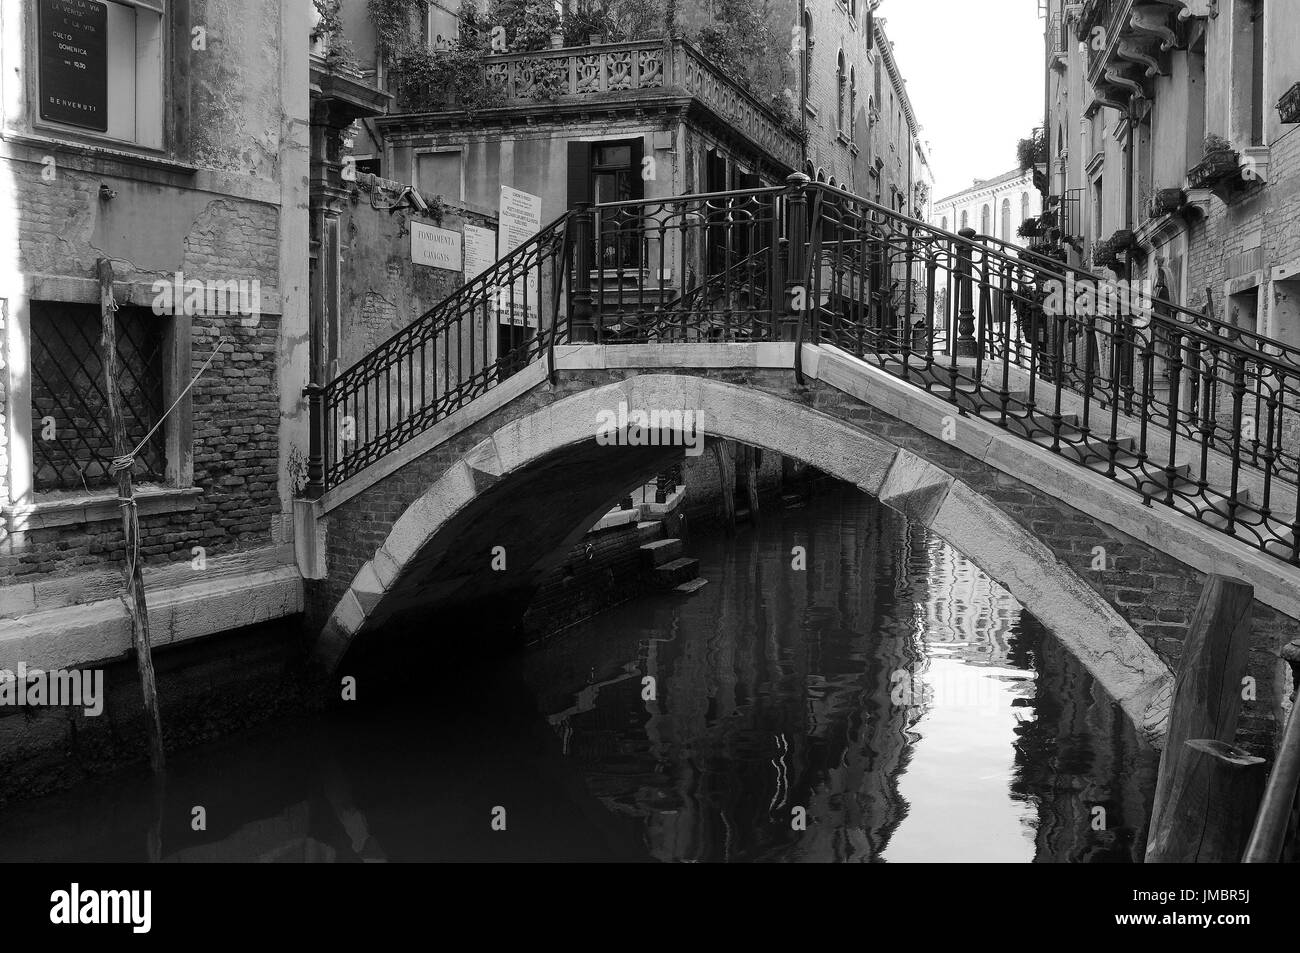 Bridge over canal, Venice. - Stock Image